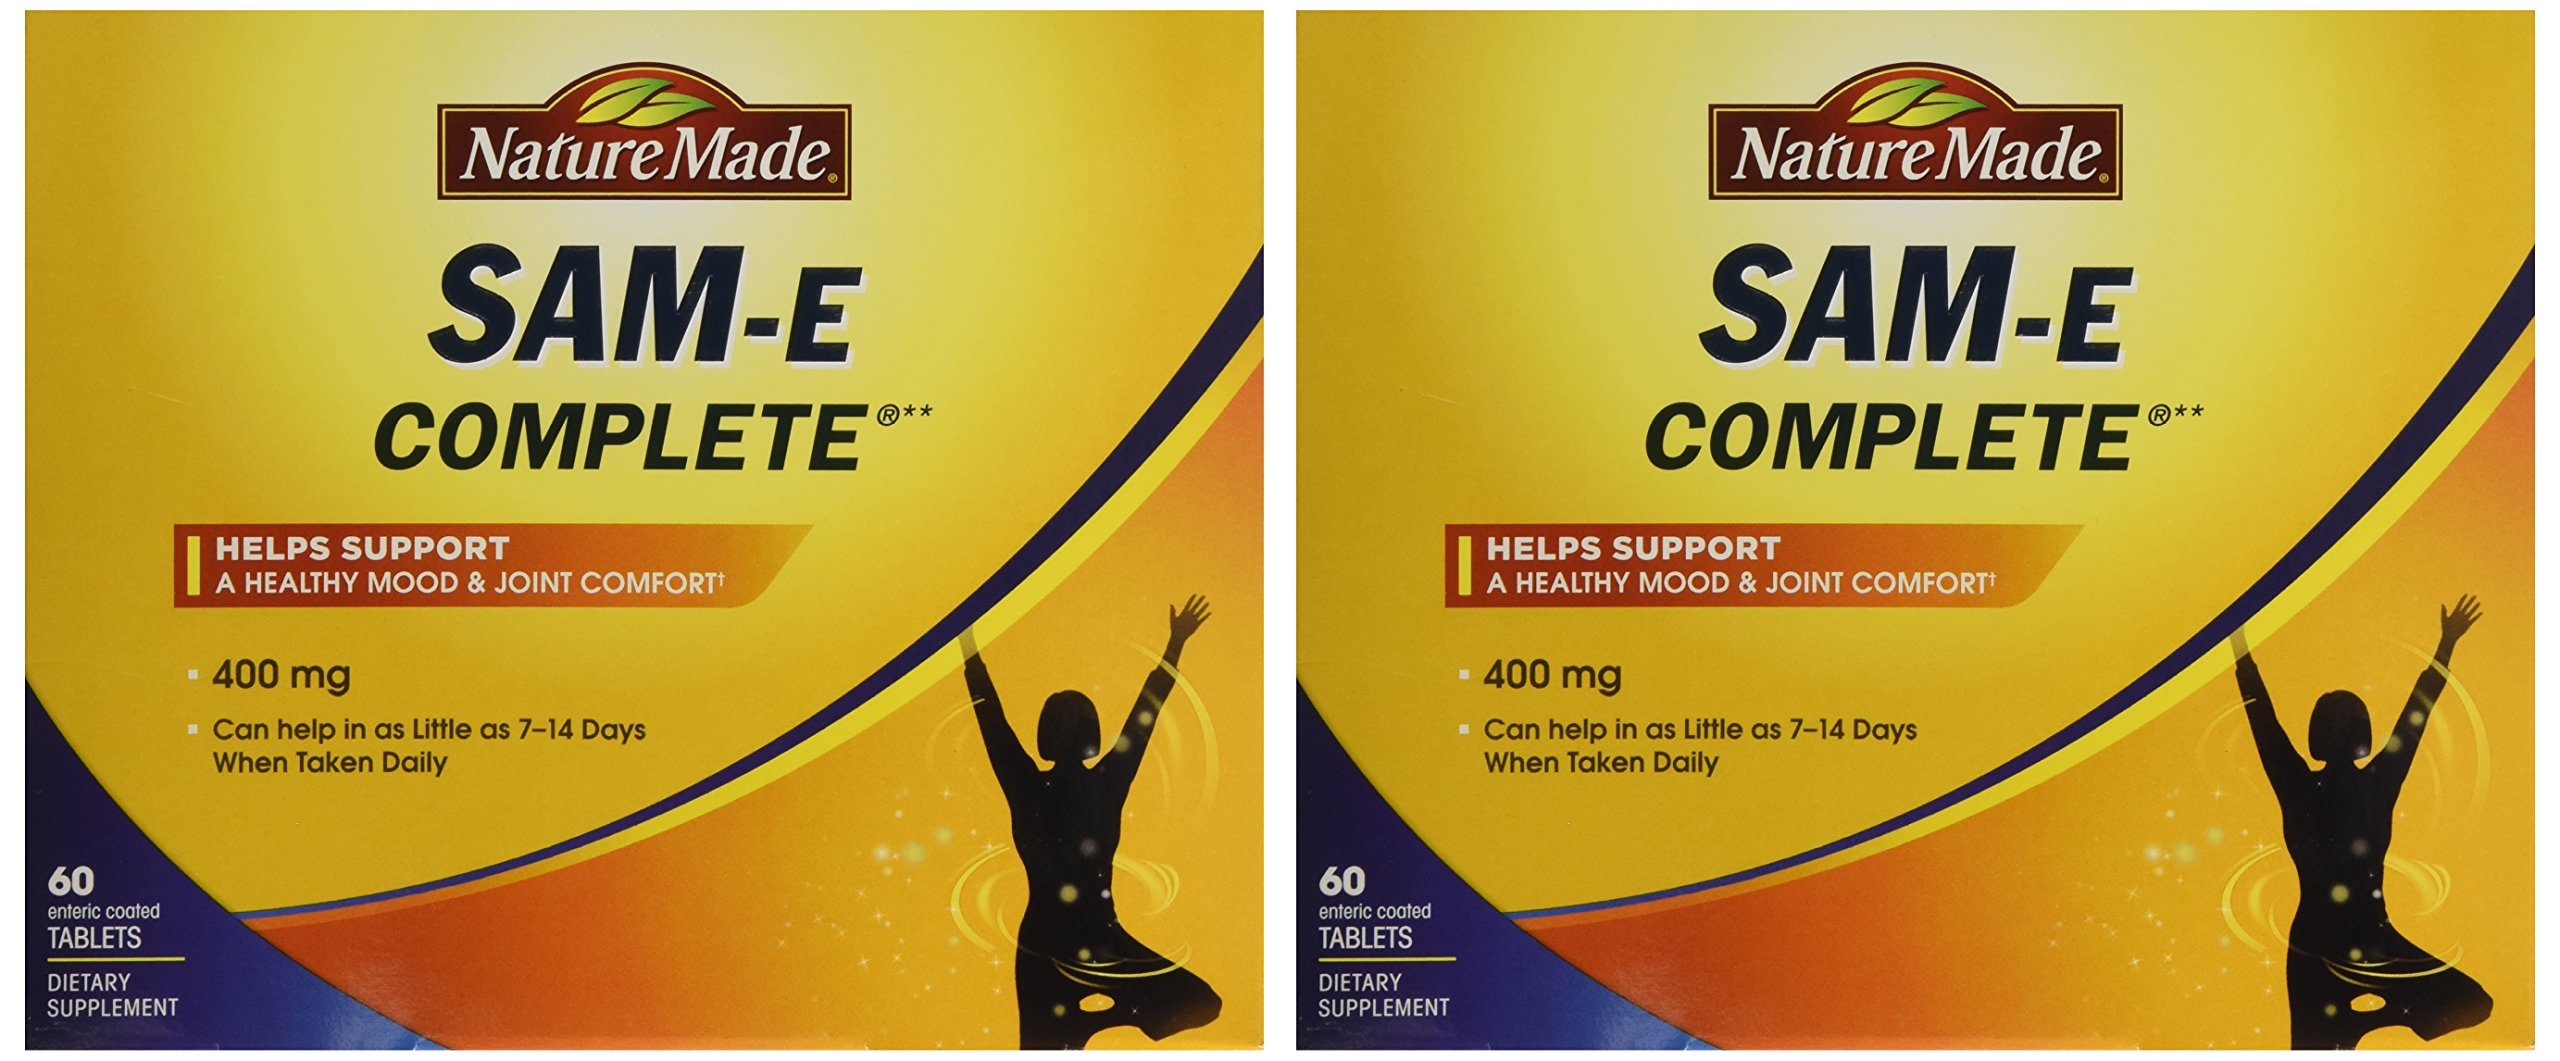 Nature Made SAM-e Complete 400 mg - 2 Boxes, 60 Enteric Tablets Each by Nature Made (Image #1)